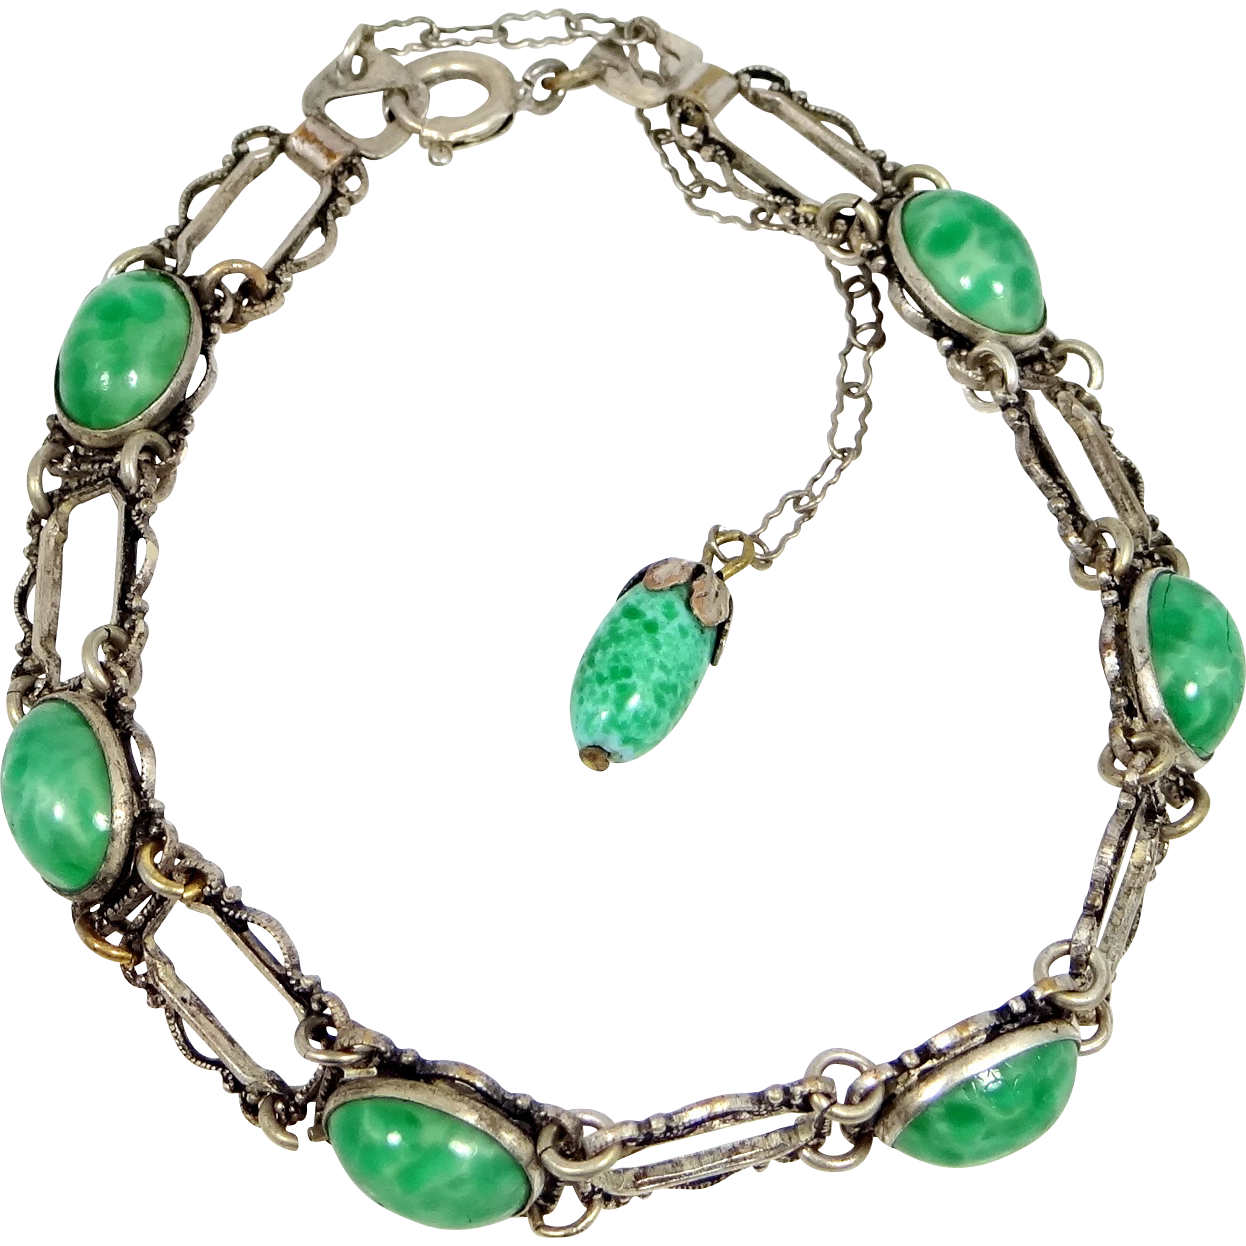 1930s Silver Plated Peking Glass Bracelet